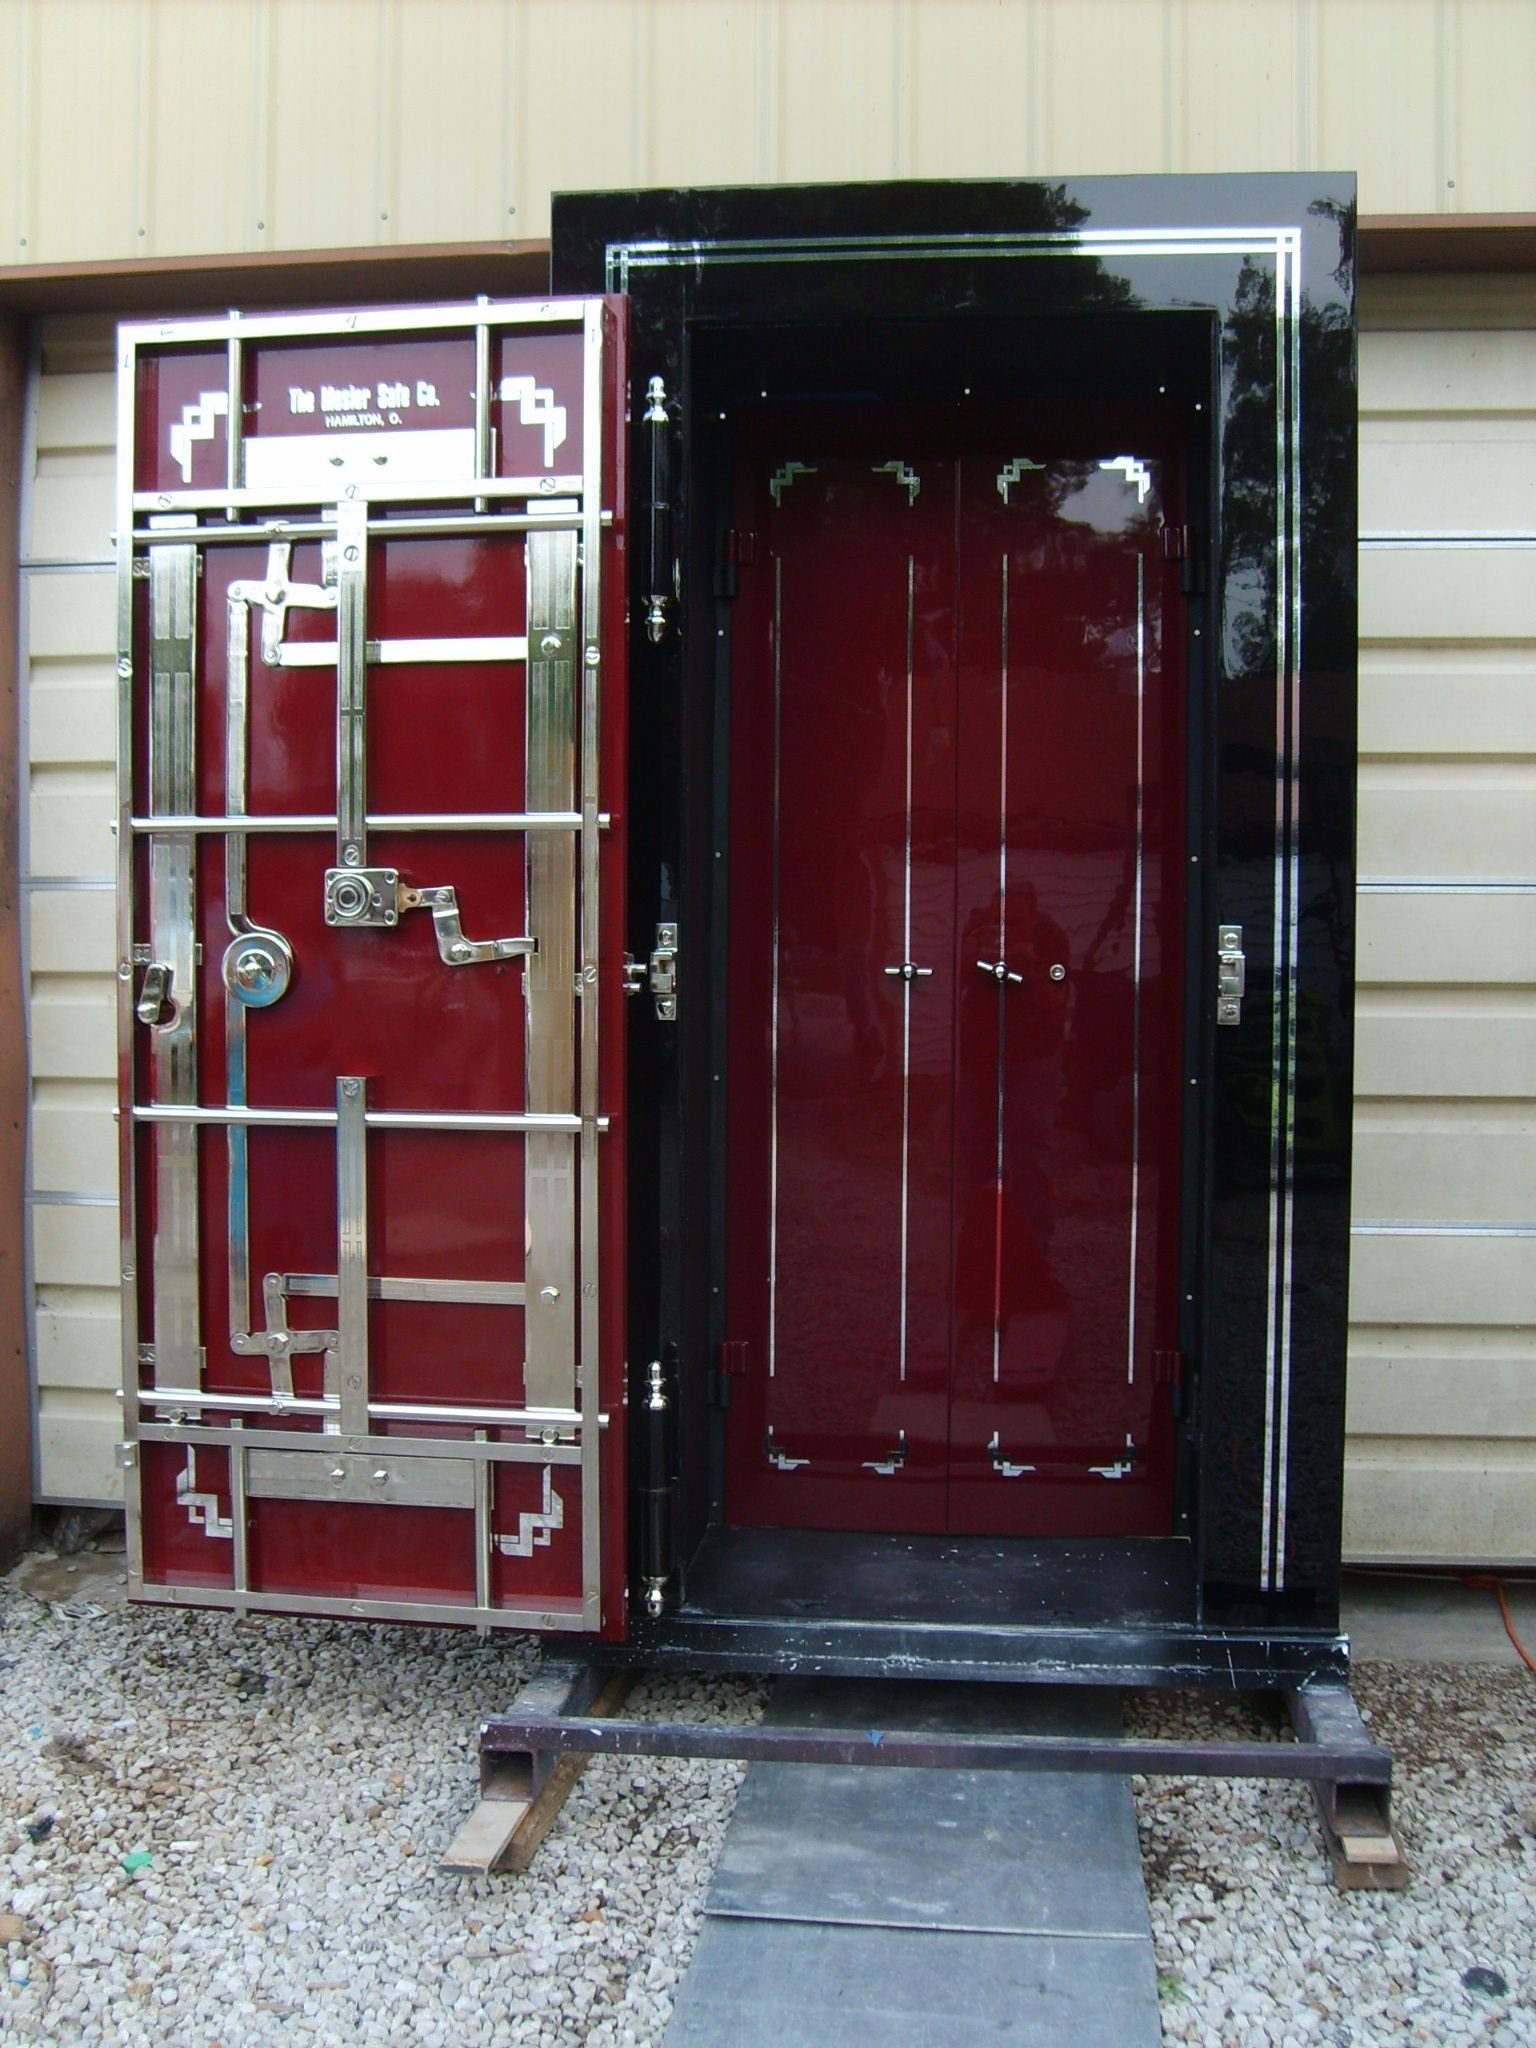 Antique Mosler Crane Hinge Vault Door Restoration - Frank Zykan Safe & Vault, LLC - Vault Doors & Panic Rooms